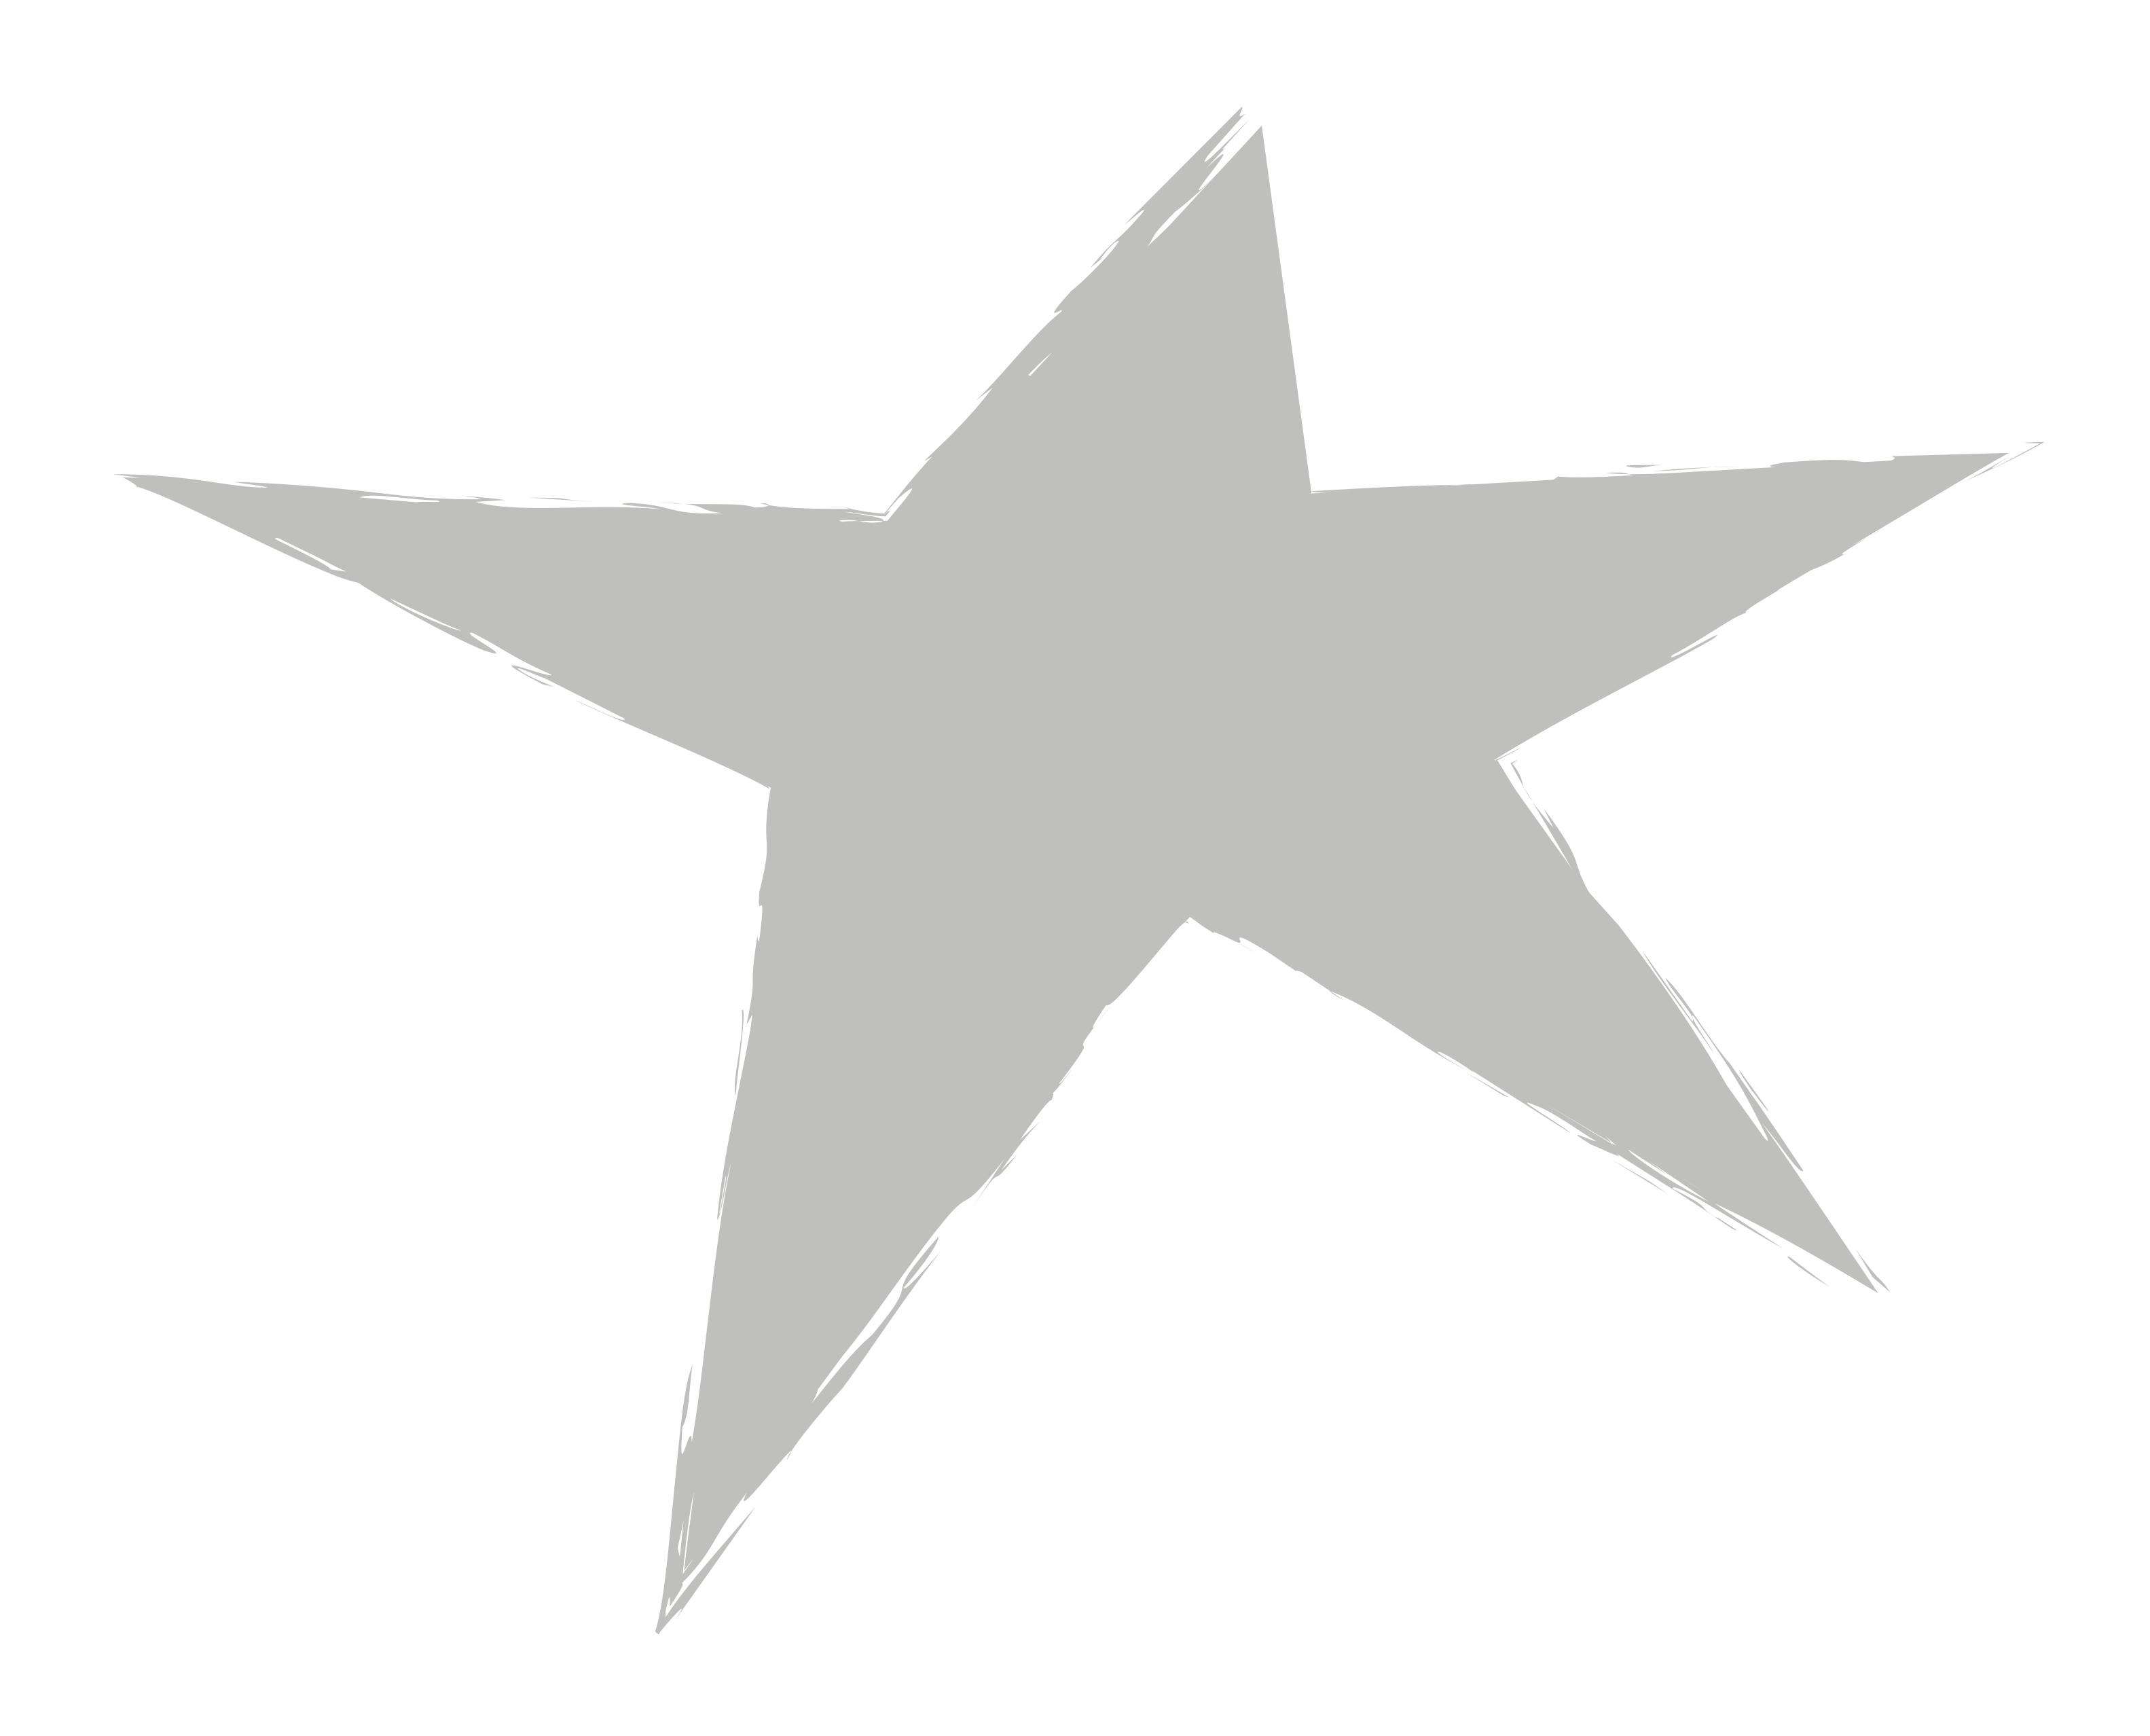 LNT Star  from logo- grayscale